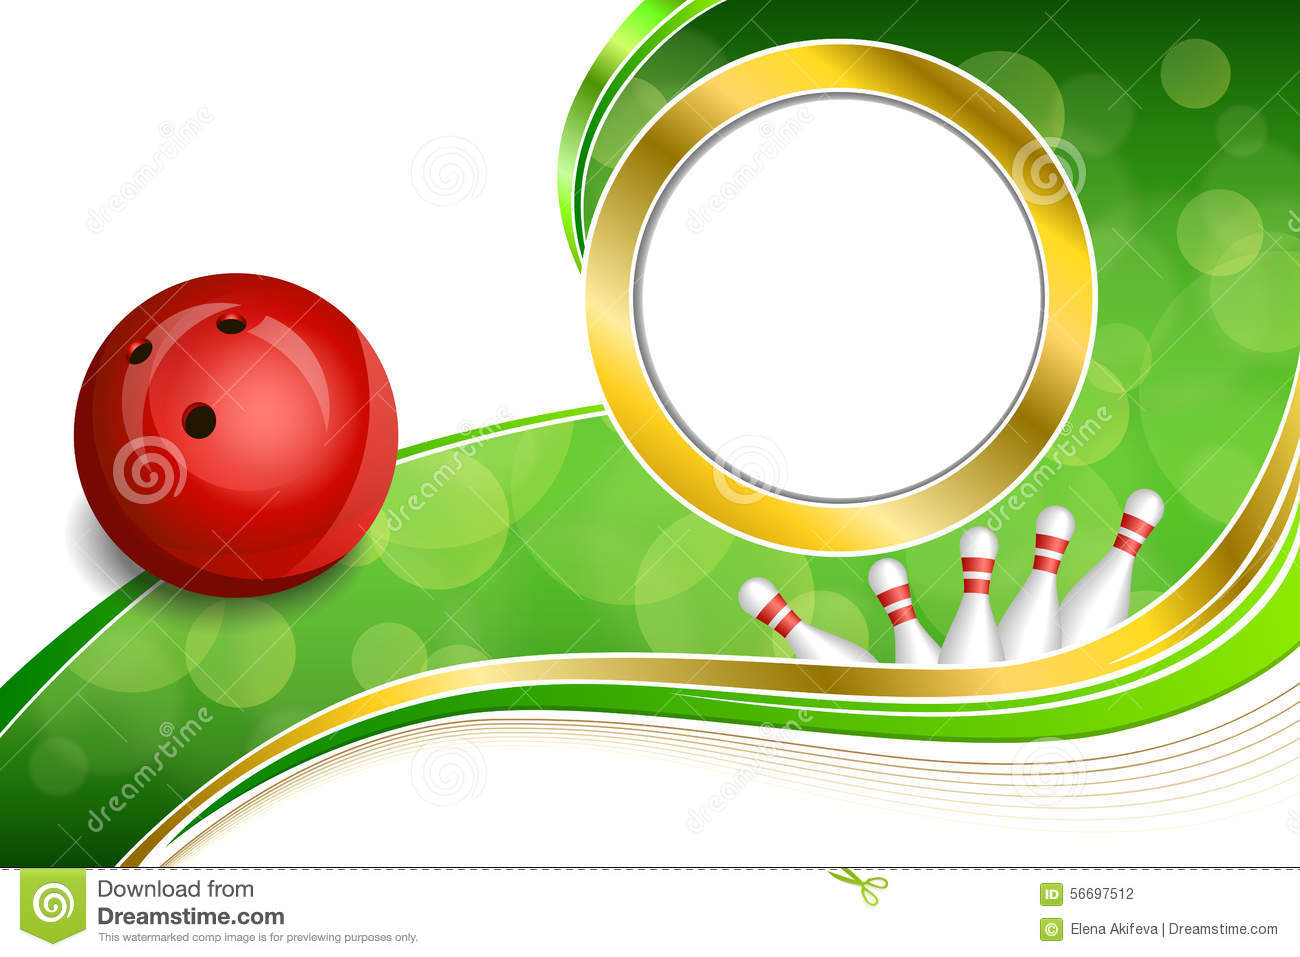 Background Abstract Volleyball Blue Yellow Ball Frame: Background Abstract Green Bowling Red Ball Gold Frame